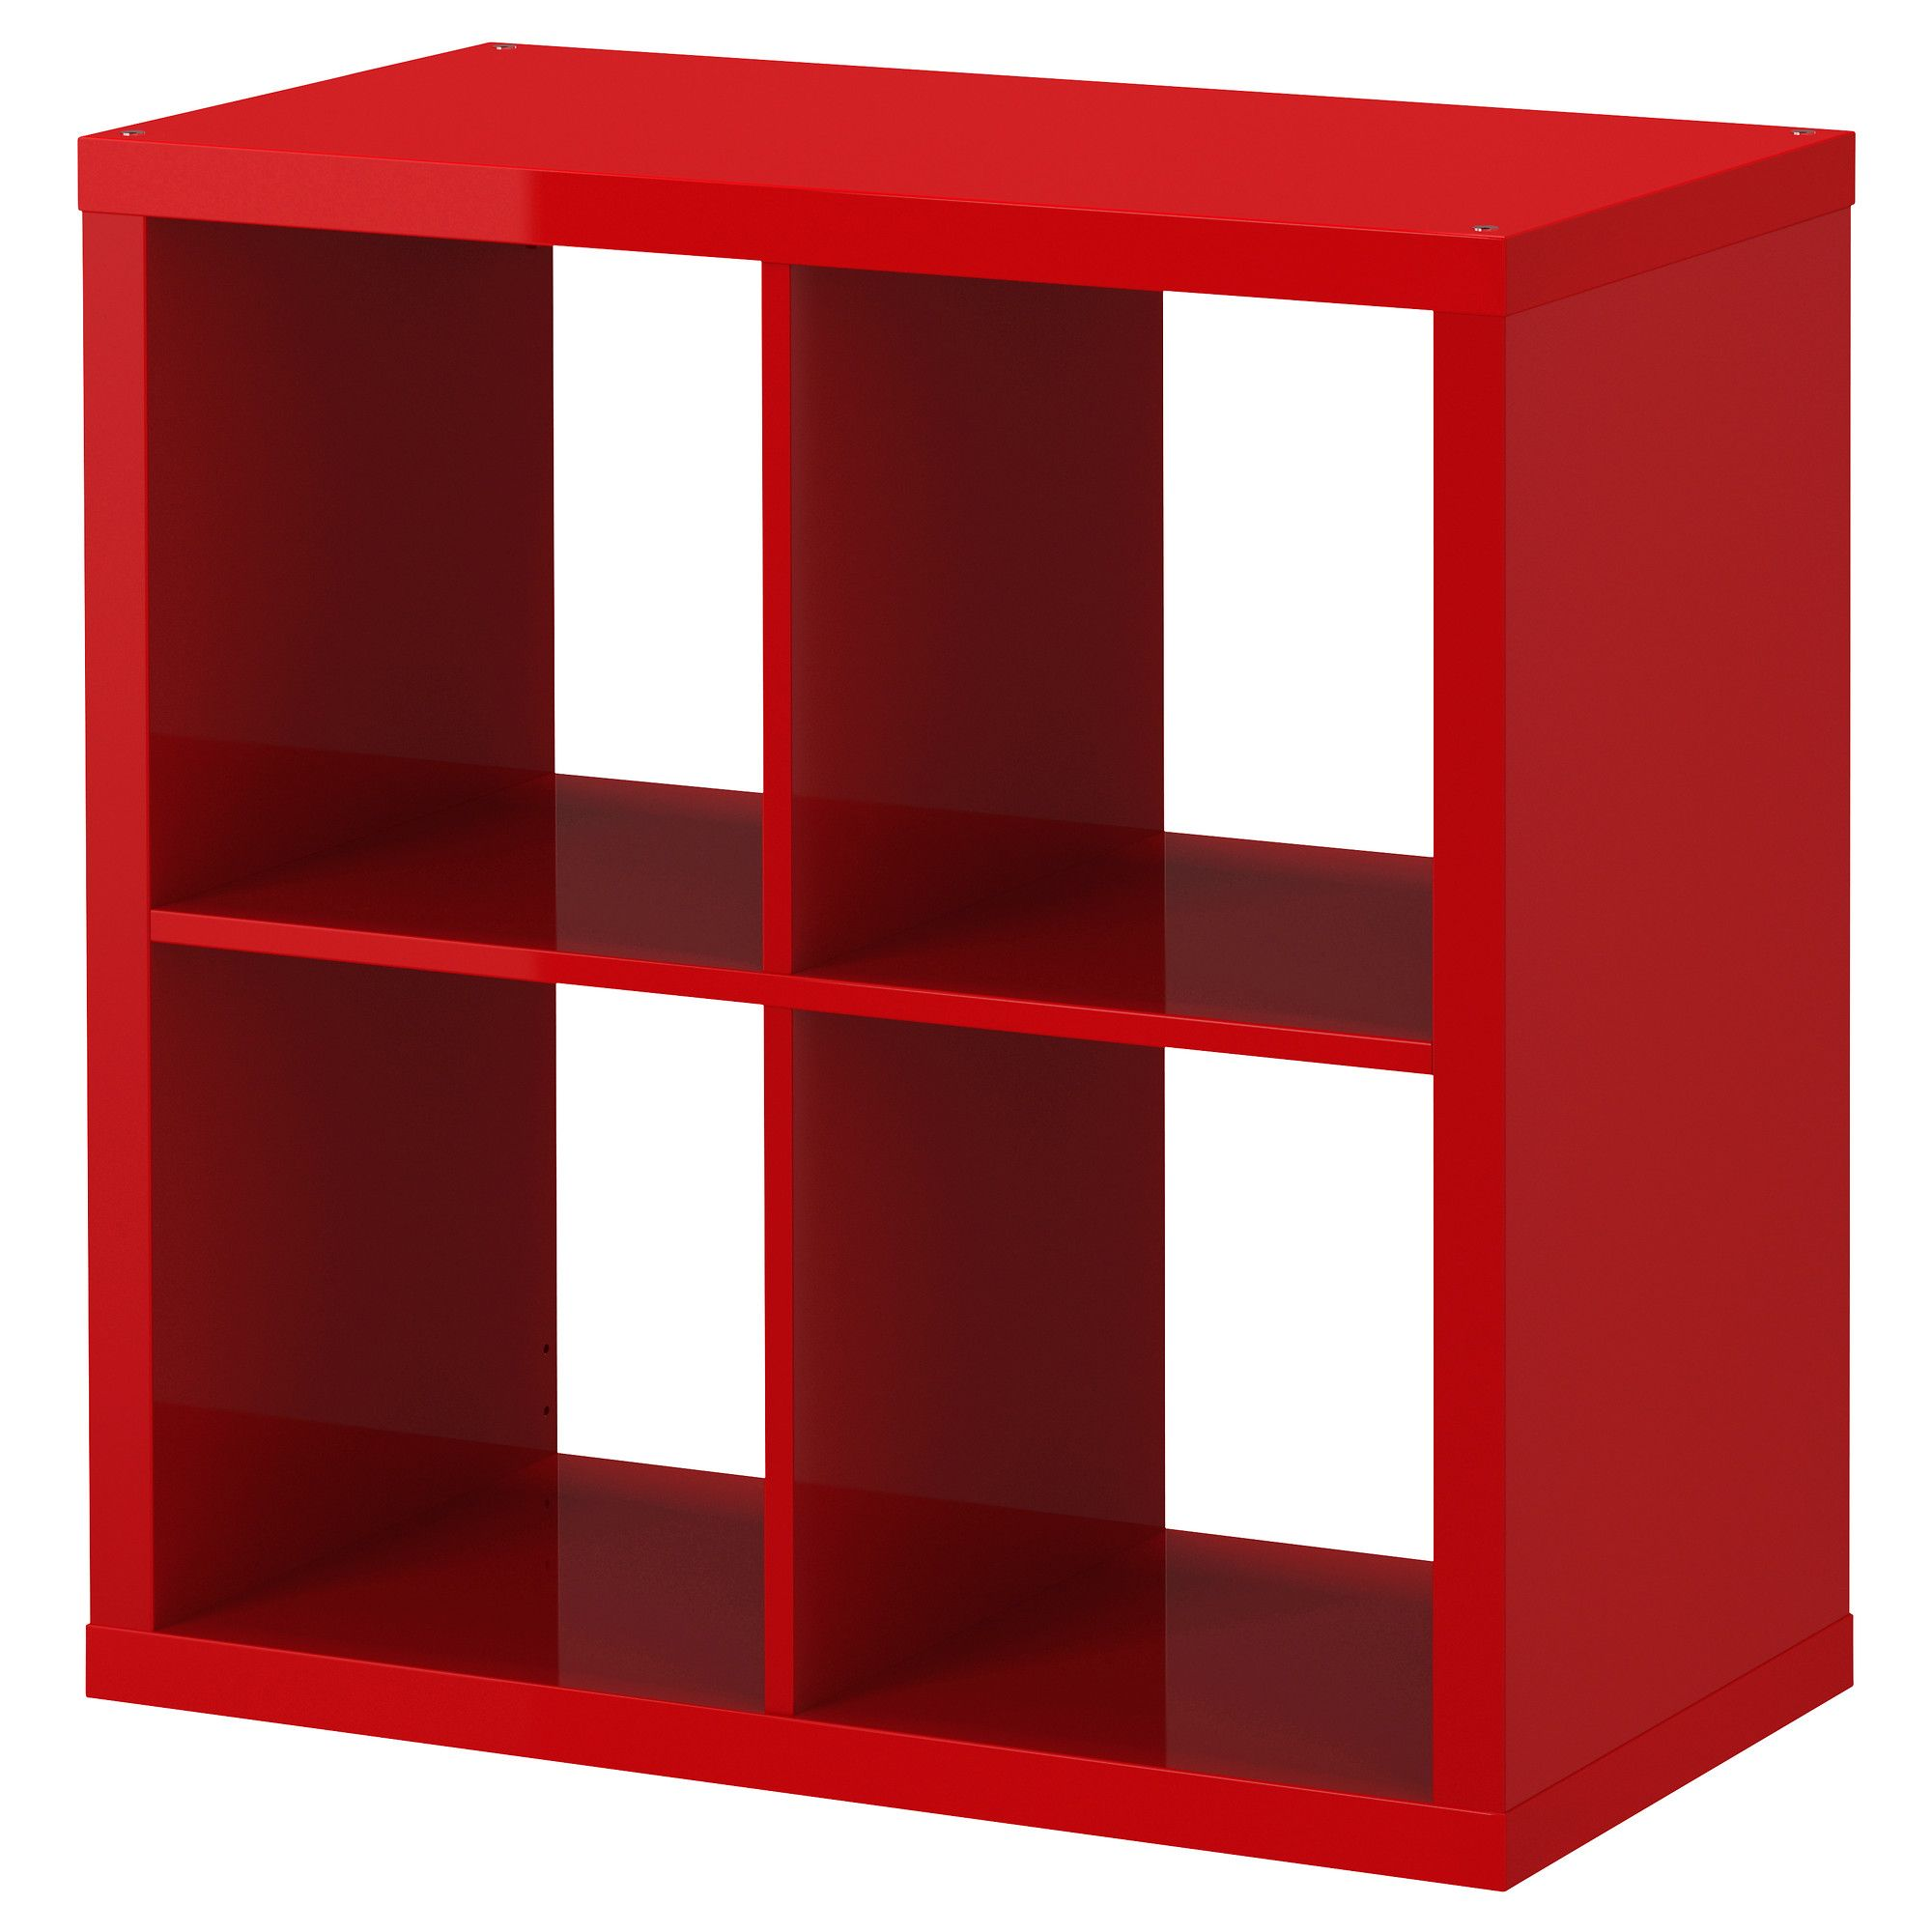 Etagere Ikea Schwarz 49 Kallax Shelving Unit High Gloss Red Ikea For Emmett S Room